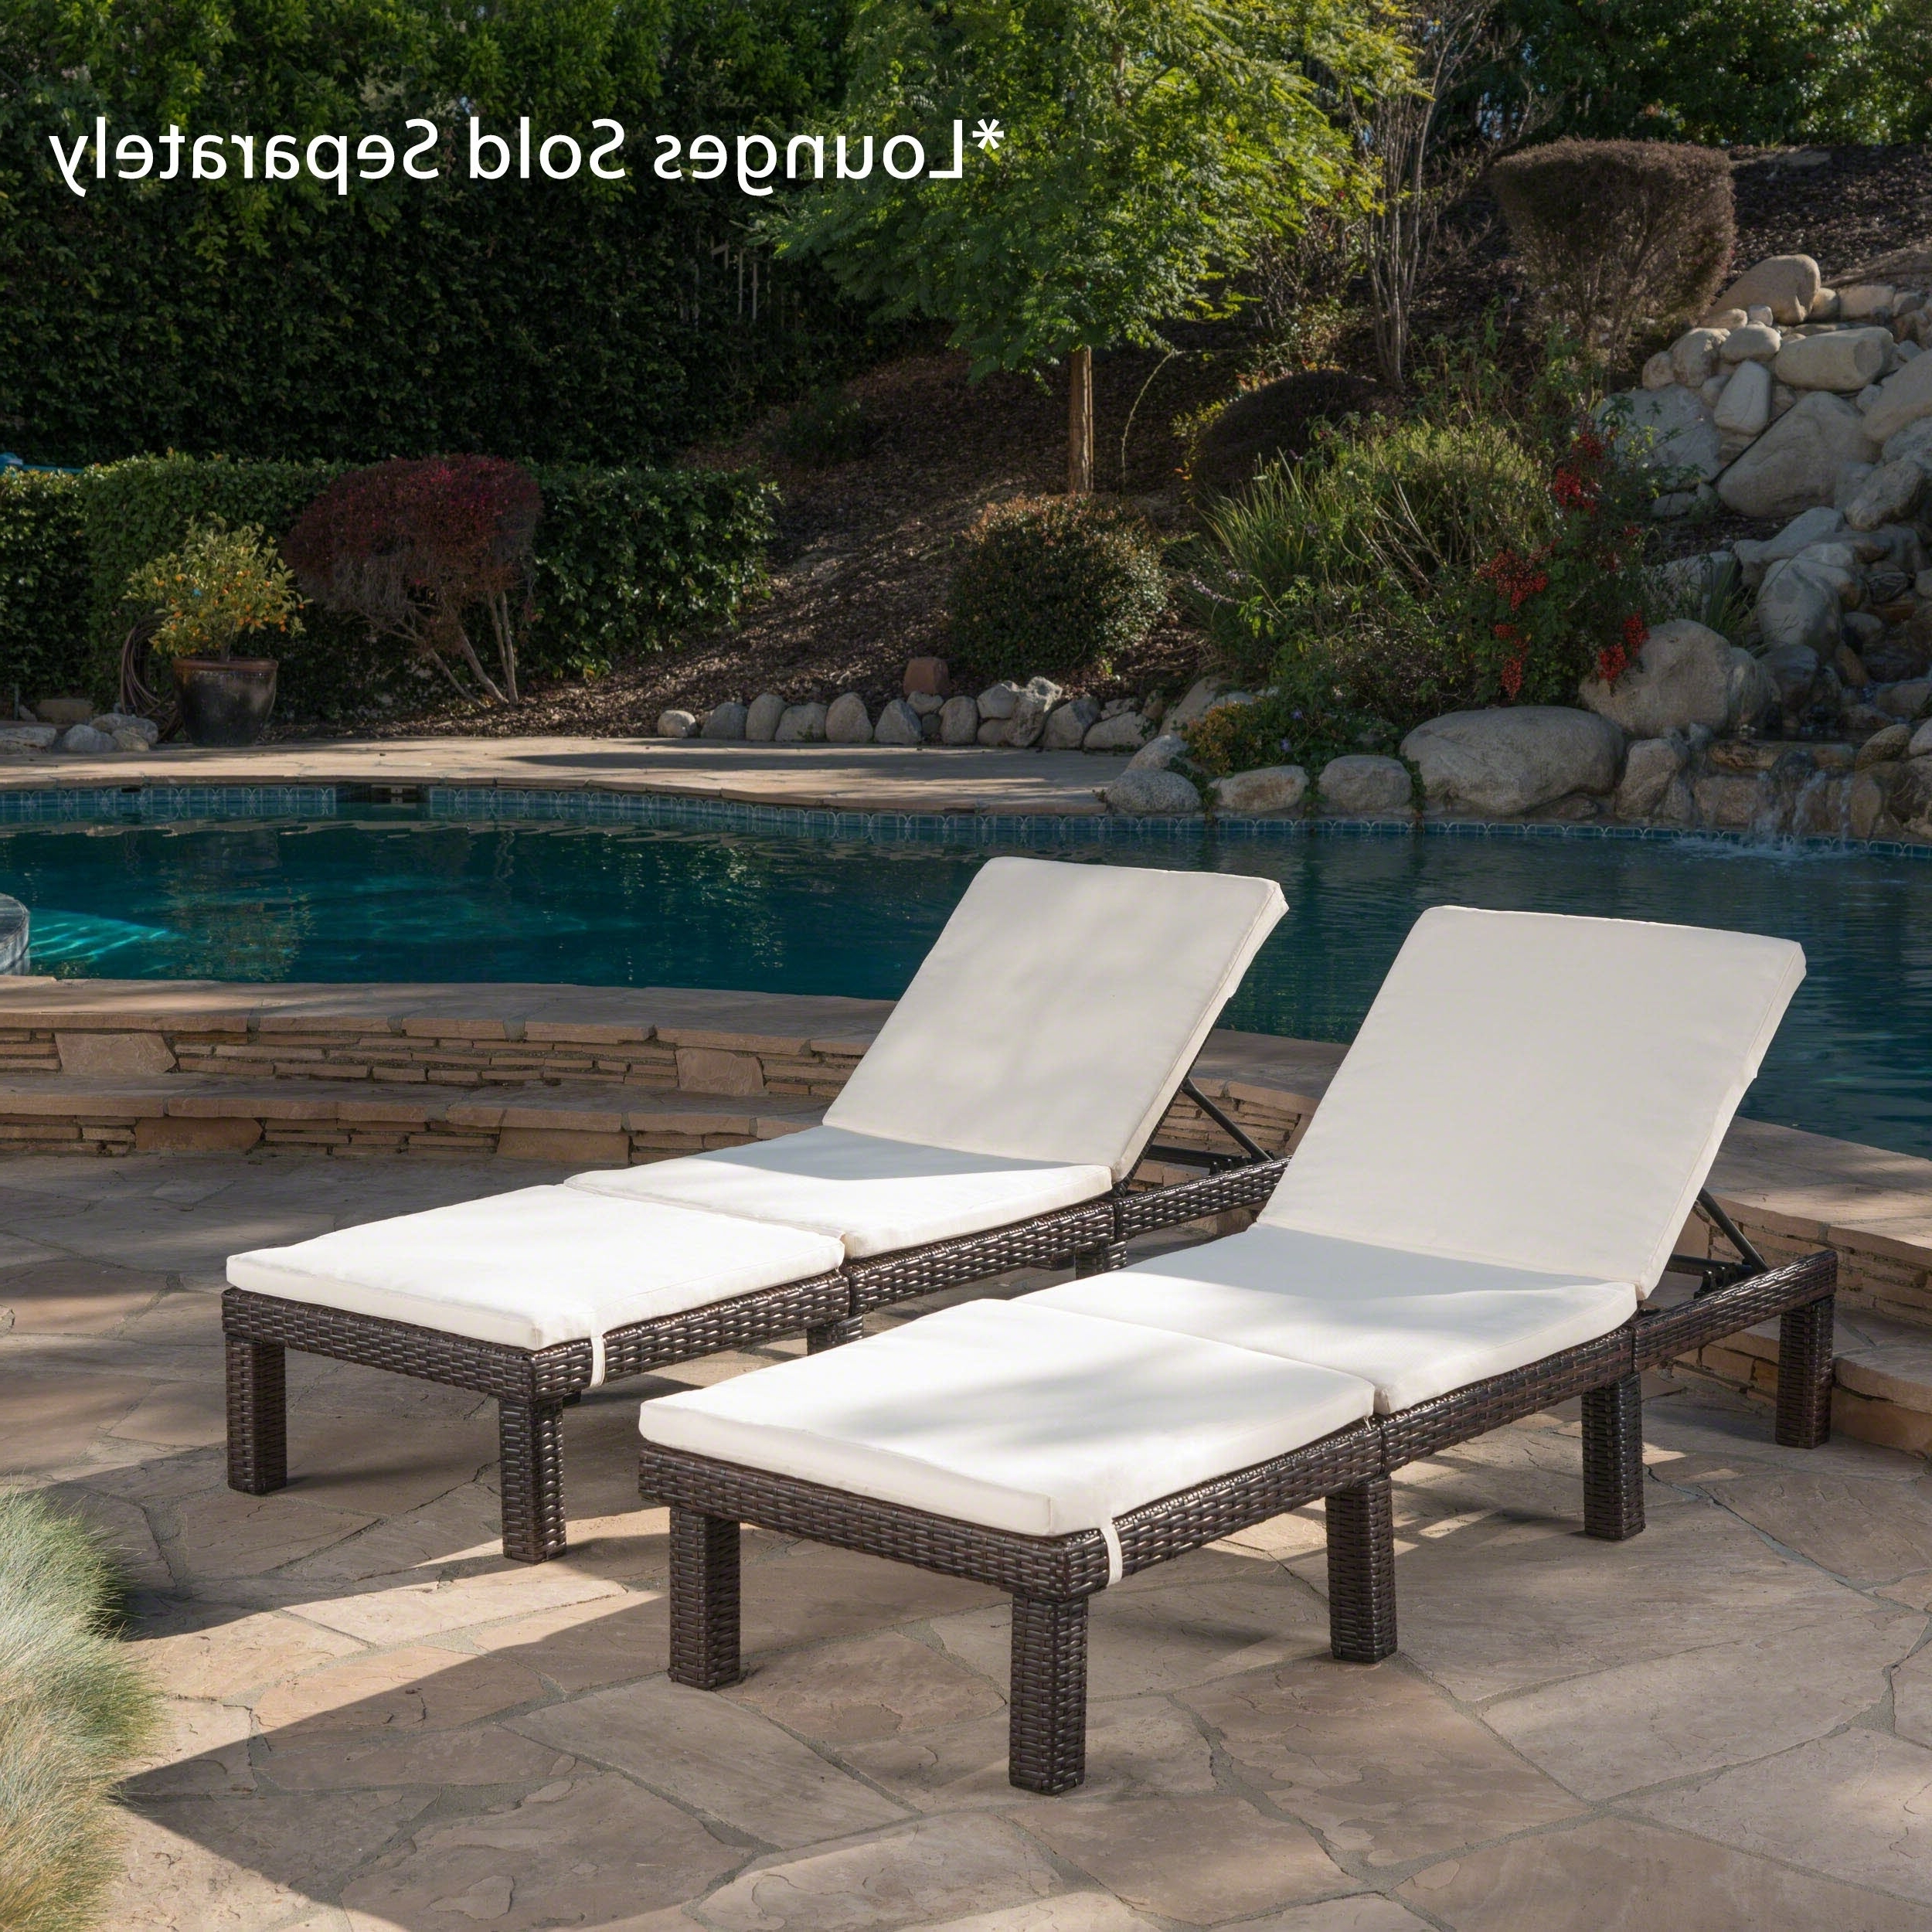 Most Recently Released Jamaica Outdoor Water Resistant Chaise Lounge Cushion (set Of 2) Christopher Knight Home Within Jamaica Outdoor Wicker Chaise Lounges With Cushion (View 7 of 25)